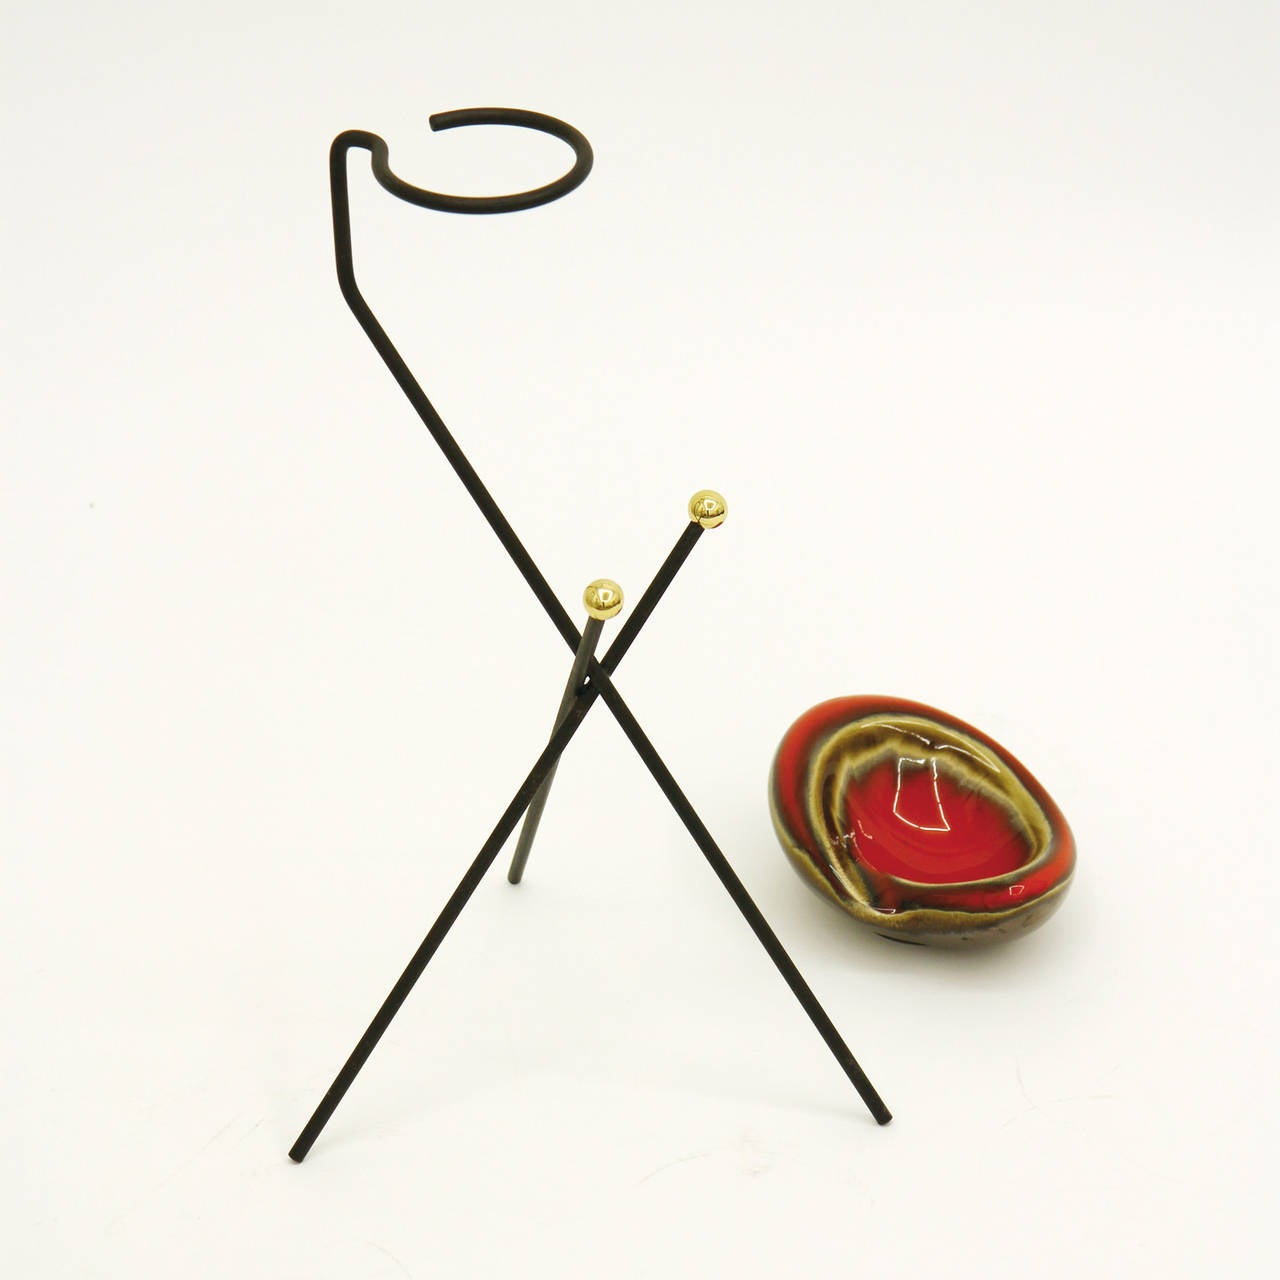 Ceramic French Modernist Tripod Ashtray or Catch-All, 1950s For Sale